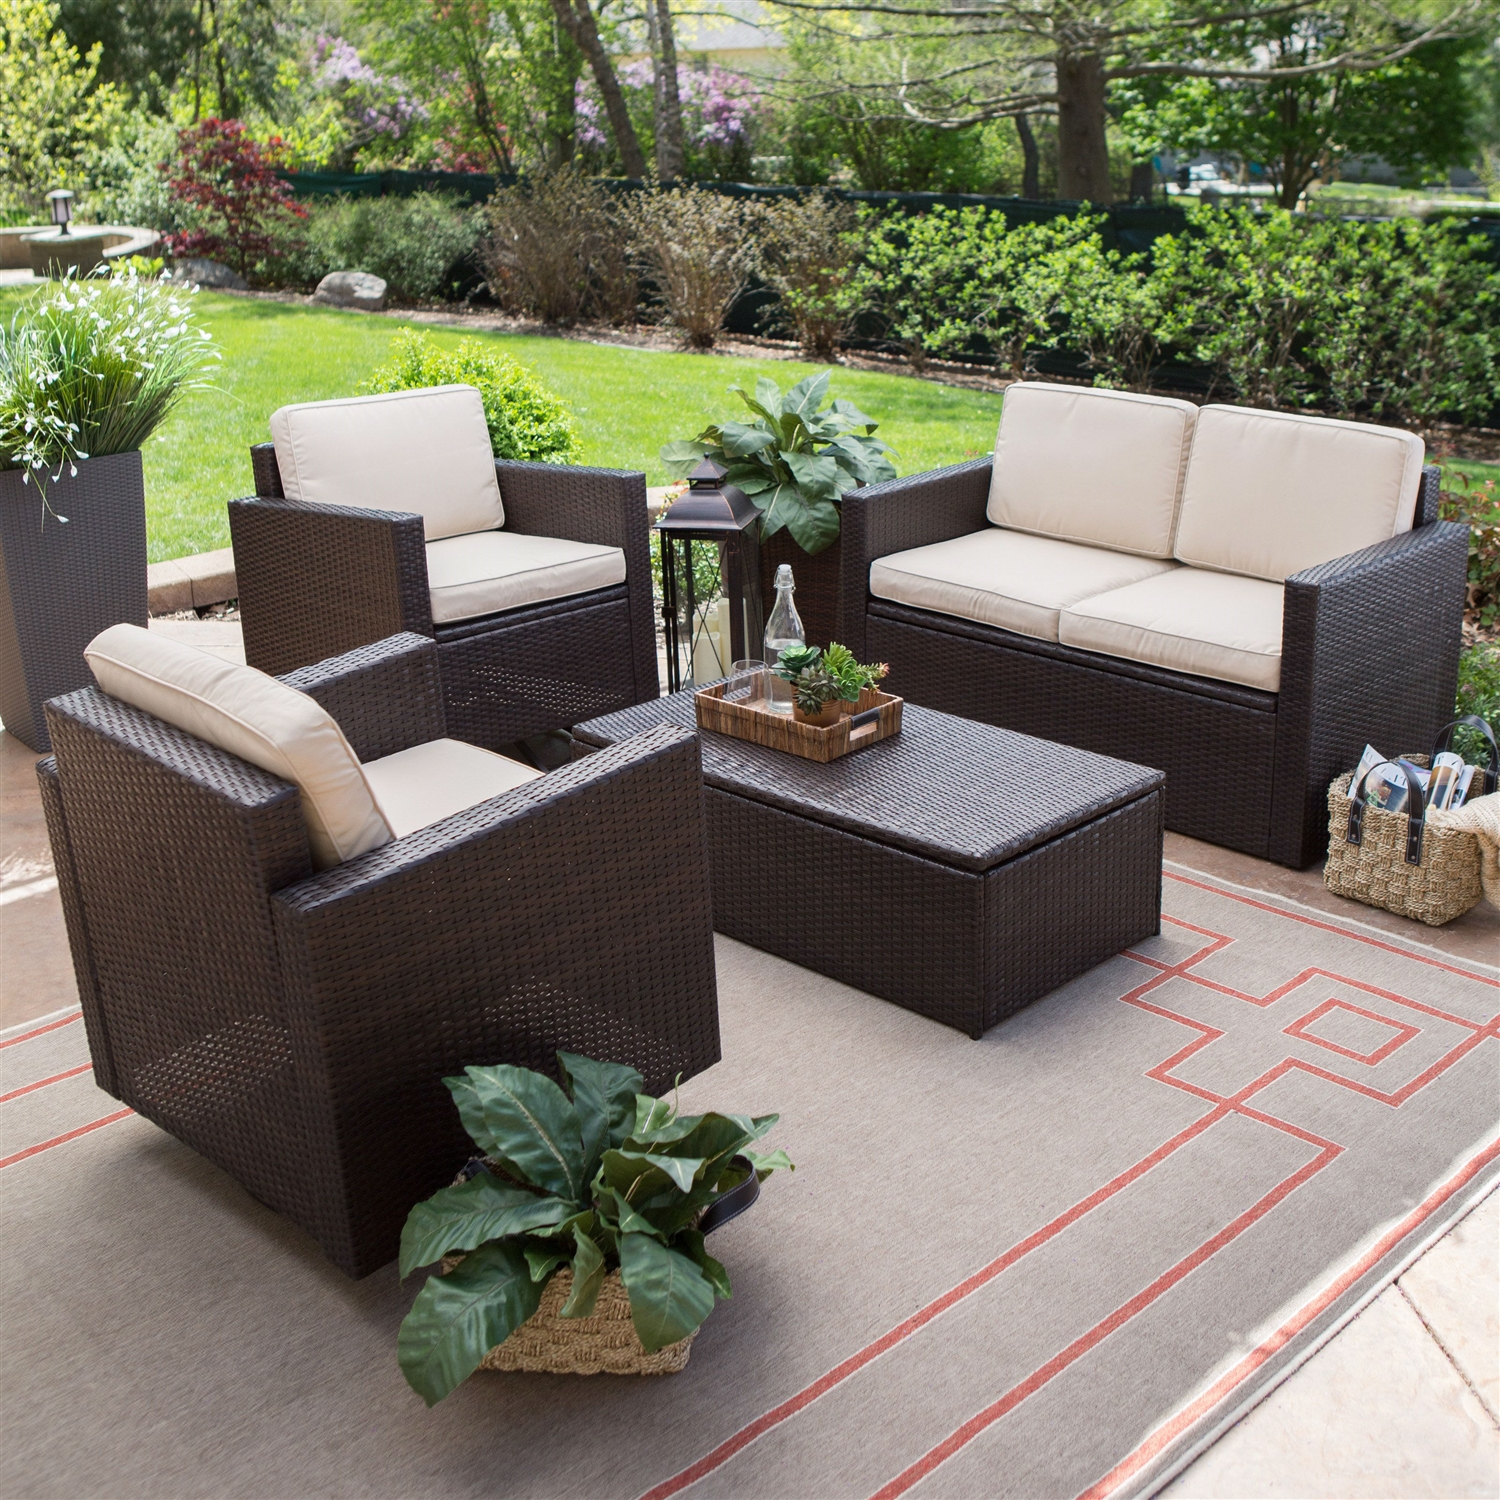 loveseat garden furniture prairie products progressive rocking design leisure glider patio outdoor